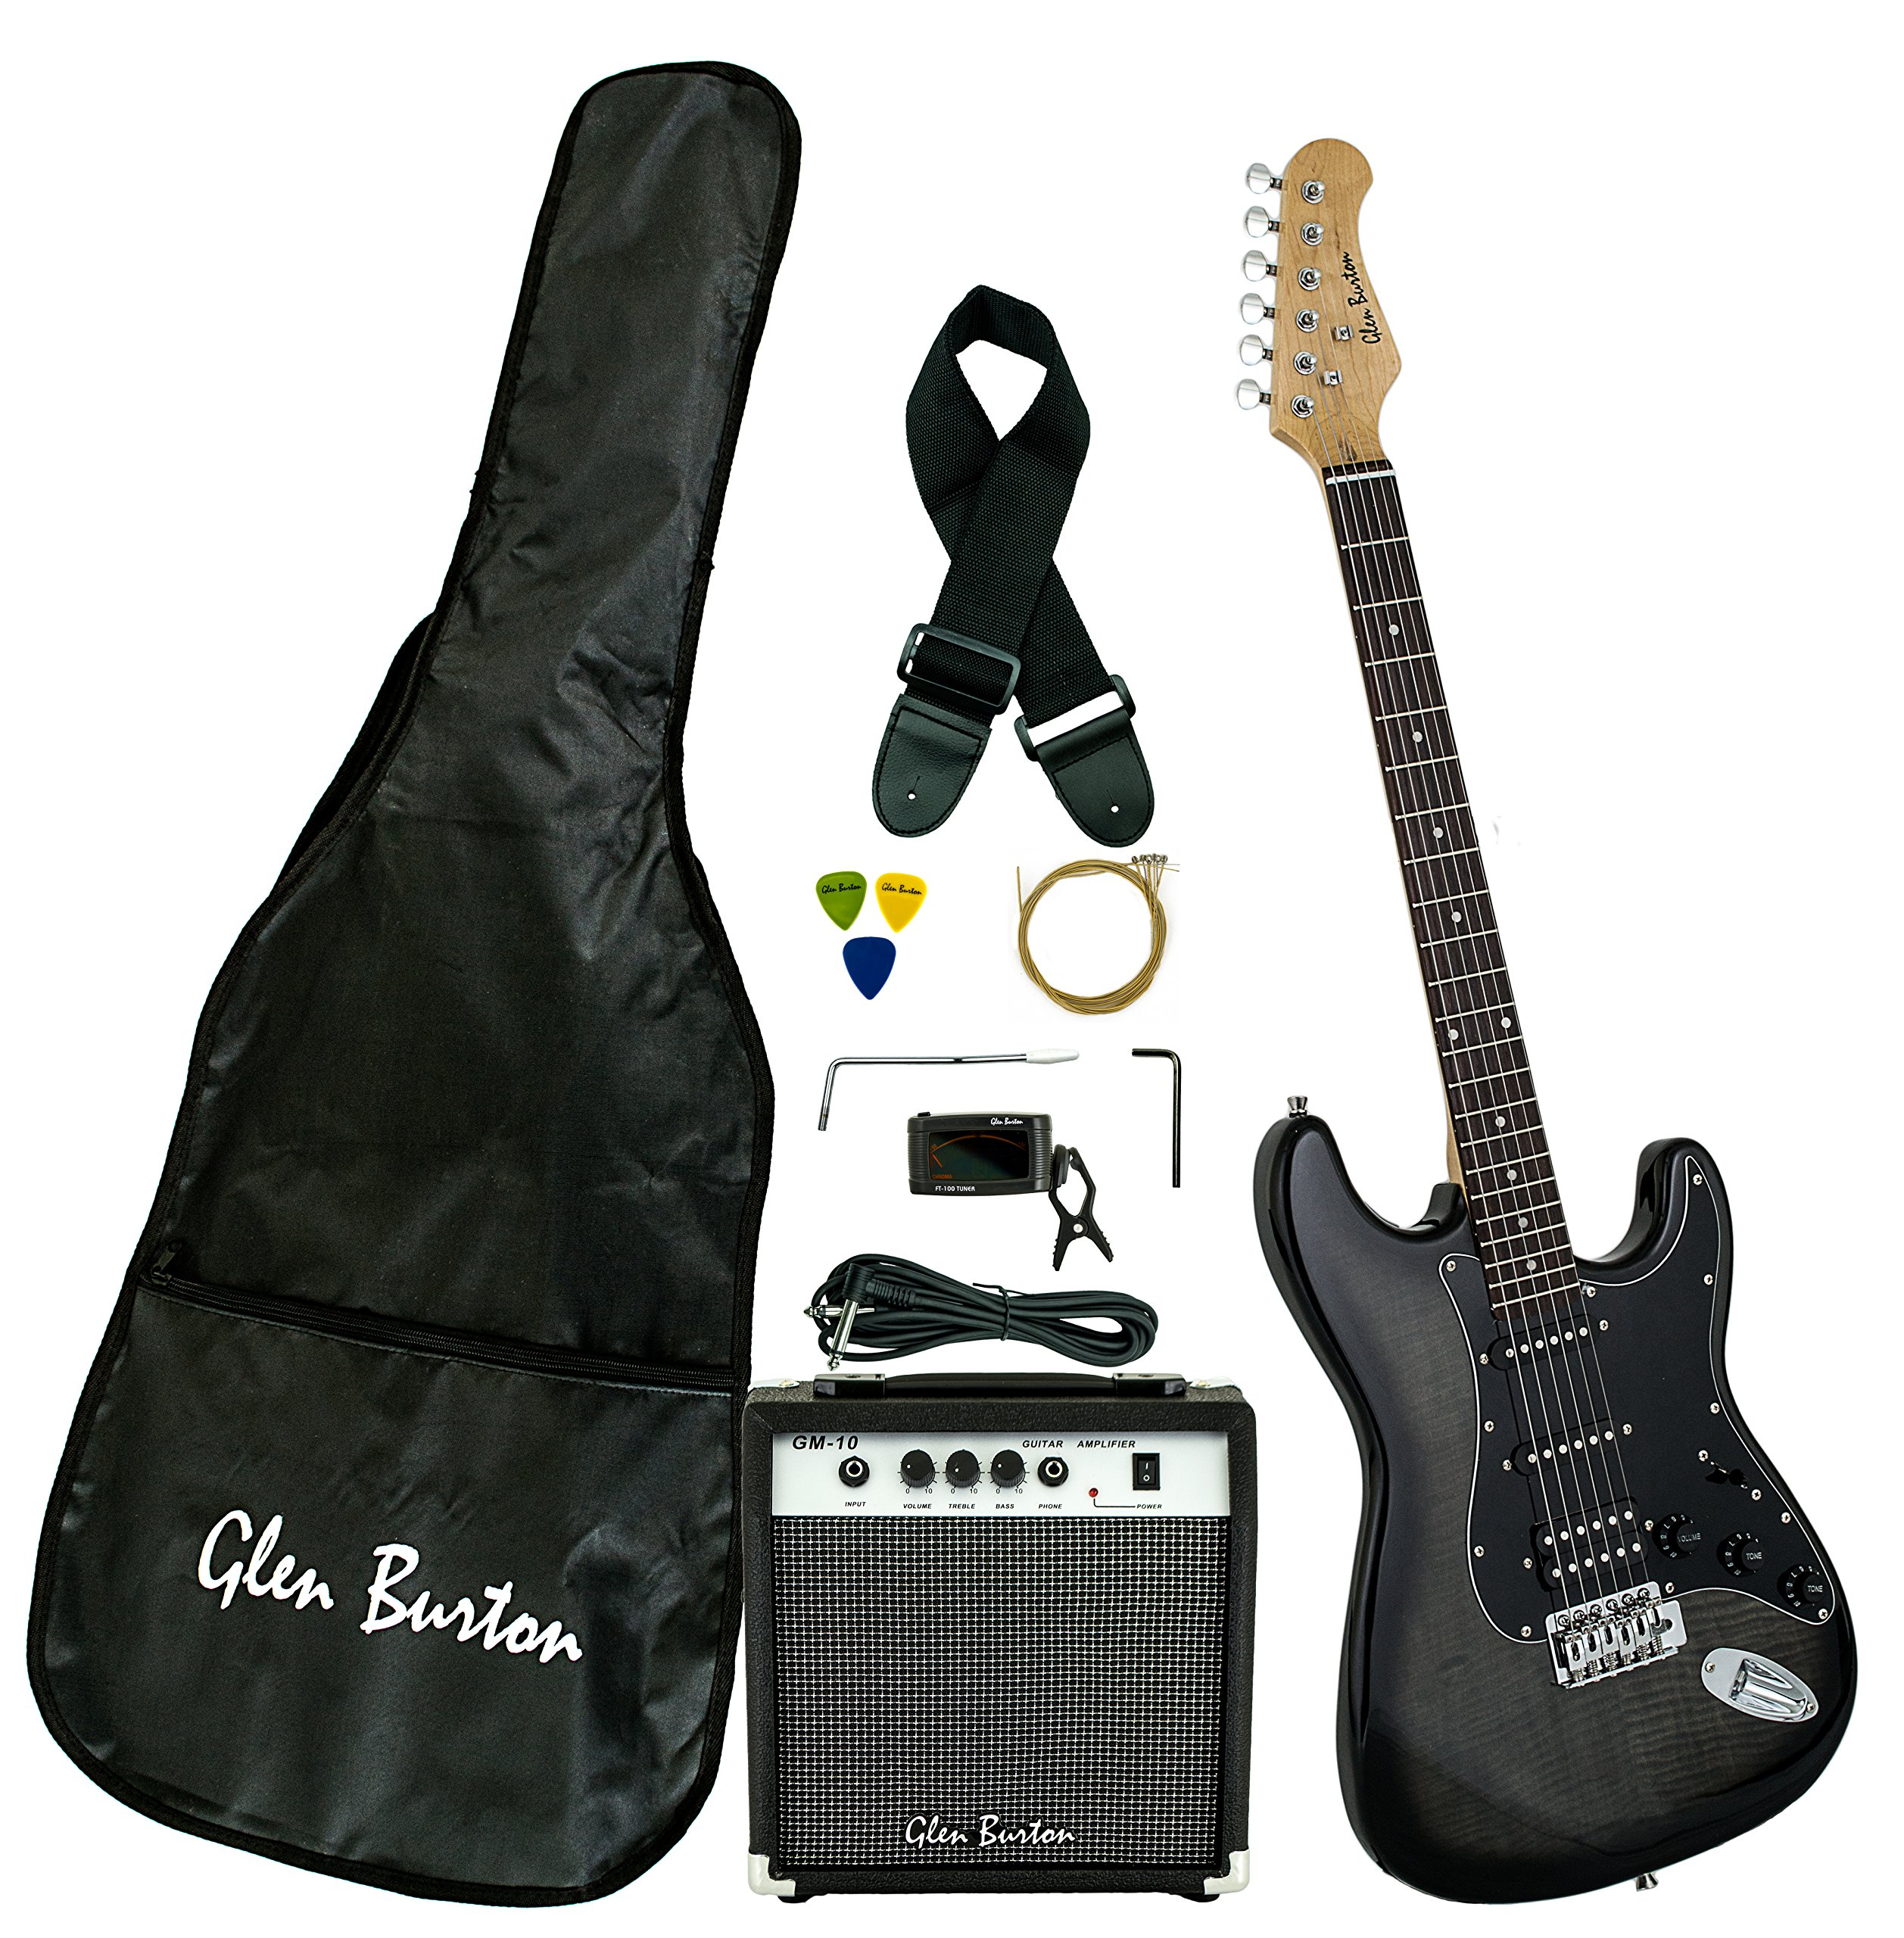 Glen Burton GE101BCO-BKB  Electric Guitar Stratocaster-Style Combo with Accessories and Amplifier, Black by Glen Burton